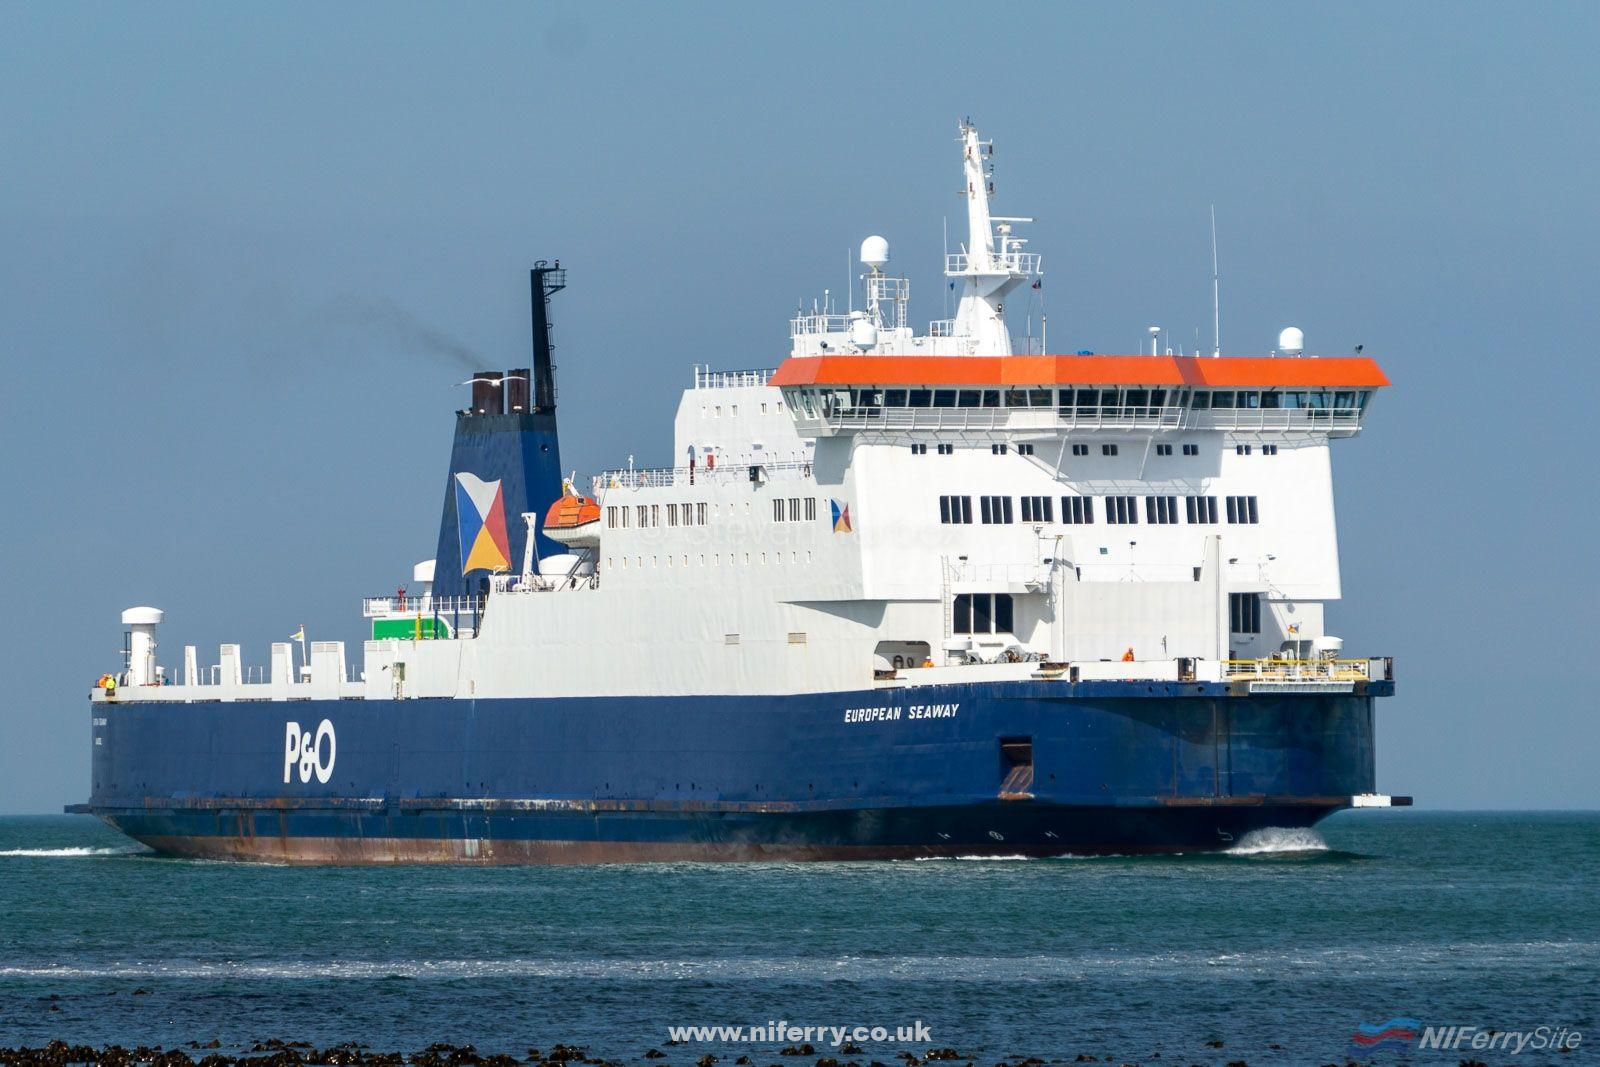 EUROPEAN SEAWAY approaches Larne at the end of her afternoon sailing from Cairnryan. This was her first day of service covering the regular vessels 2019 dry dockings, 16.05.19. Copyright © Steven Tarbox